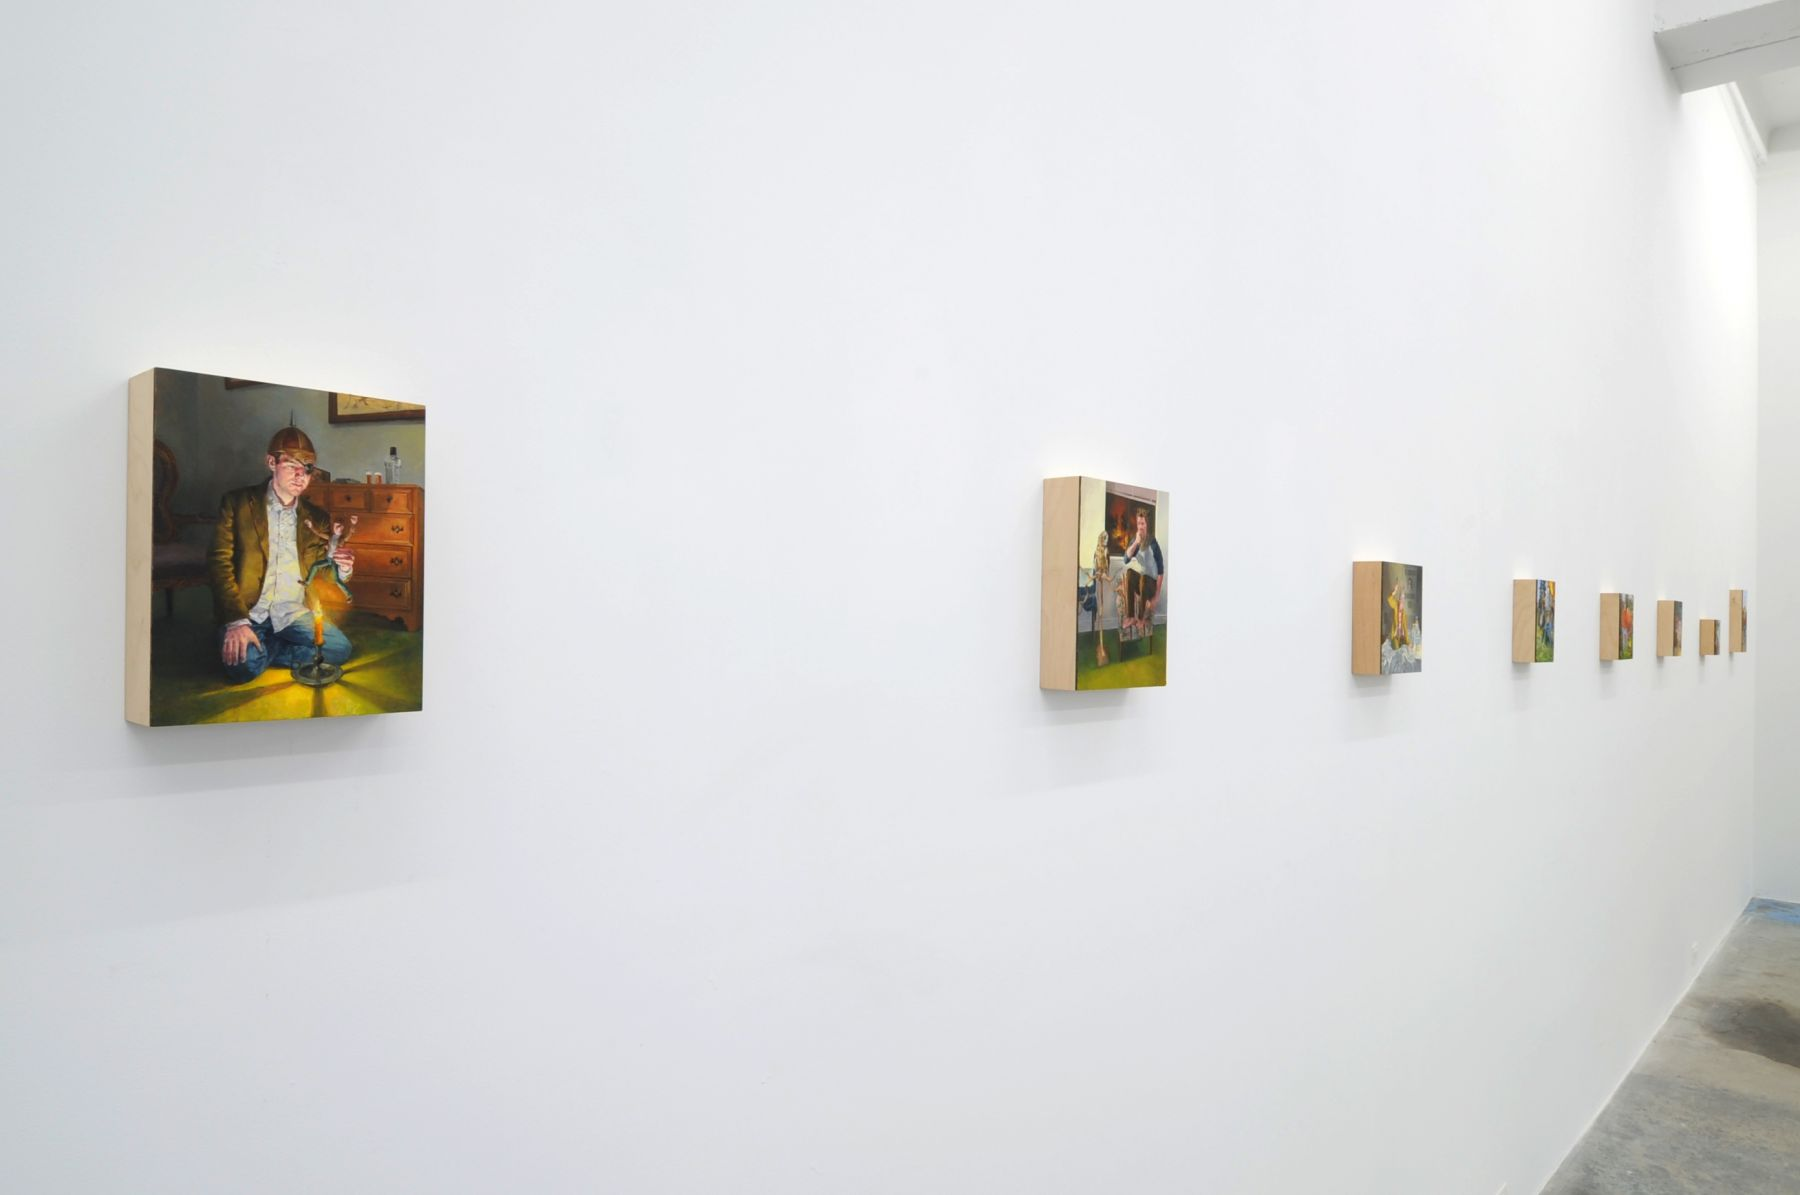 NATHANIEL ROGERS The Last Viking 2009. Installation view: Conner Contemporary Art.